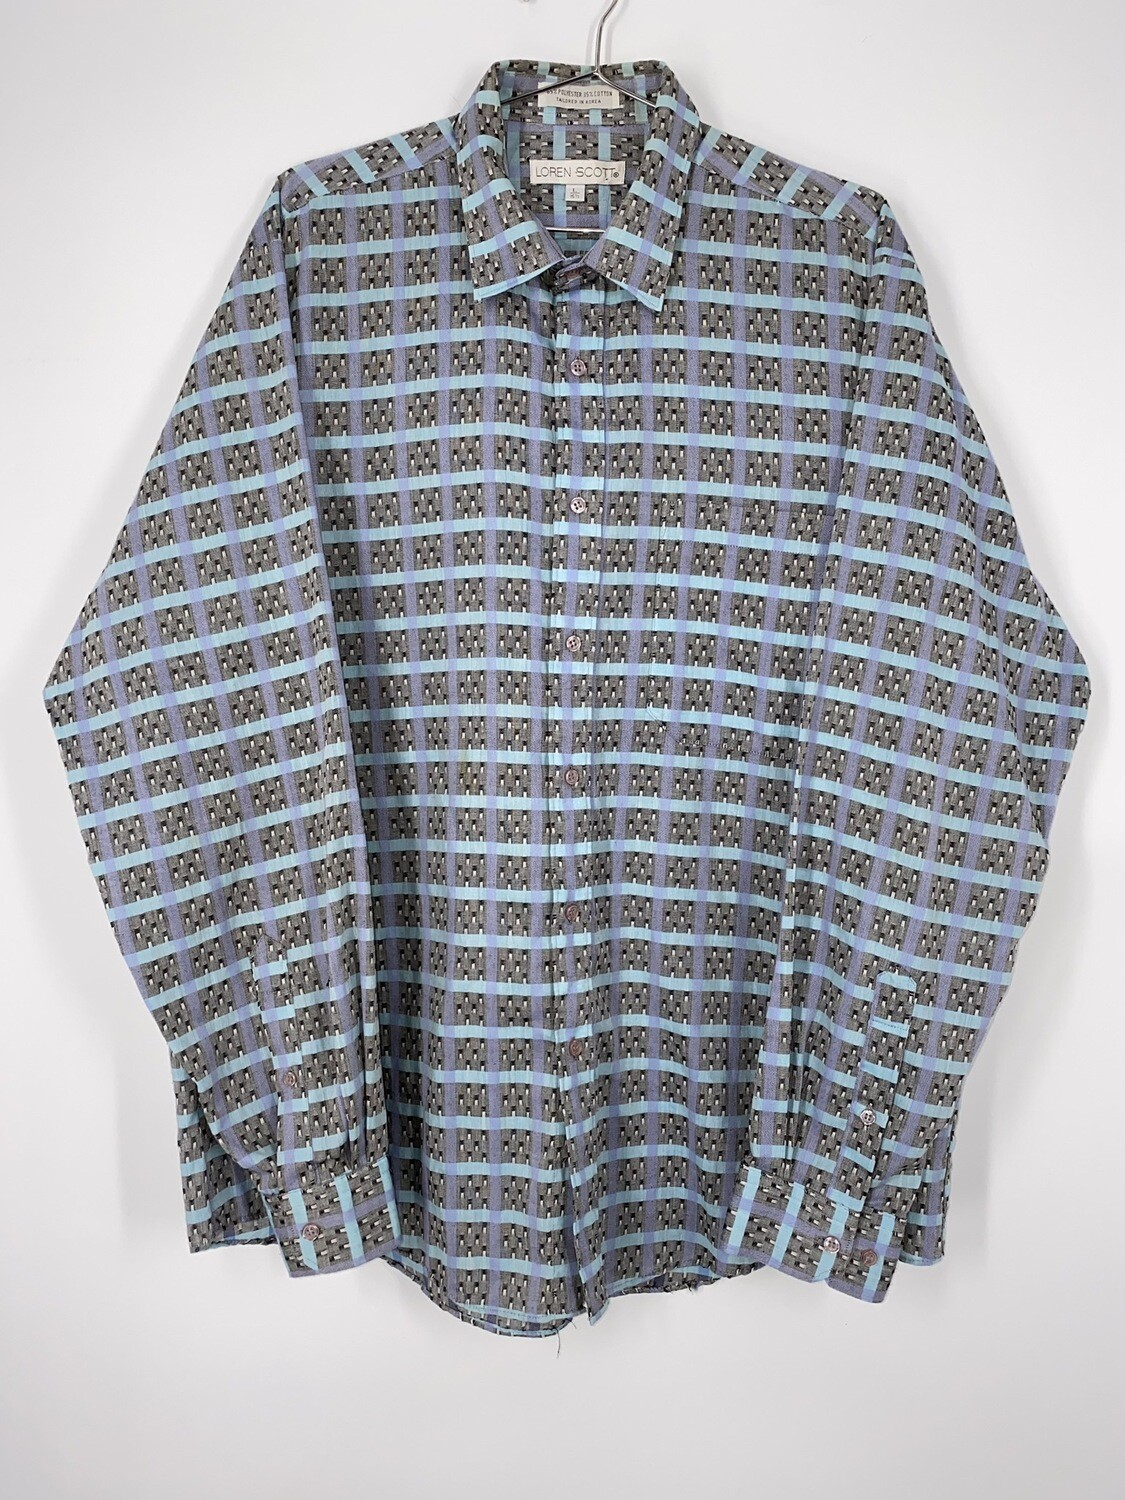 Loren Scott Blue And Grey Abstract Checkered Print Button Up Size L